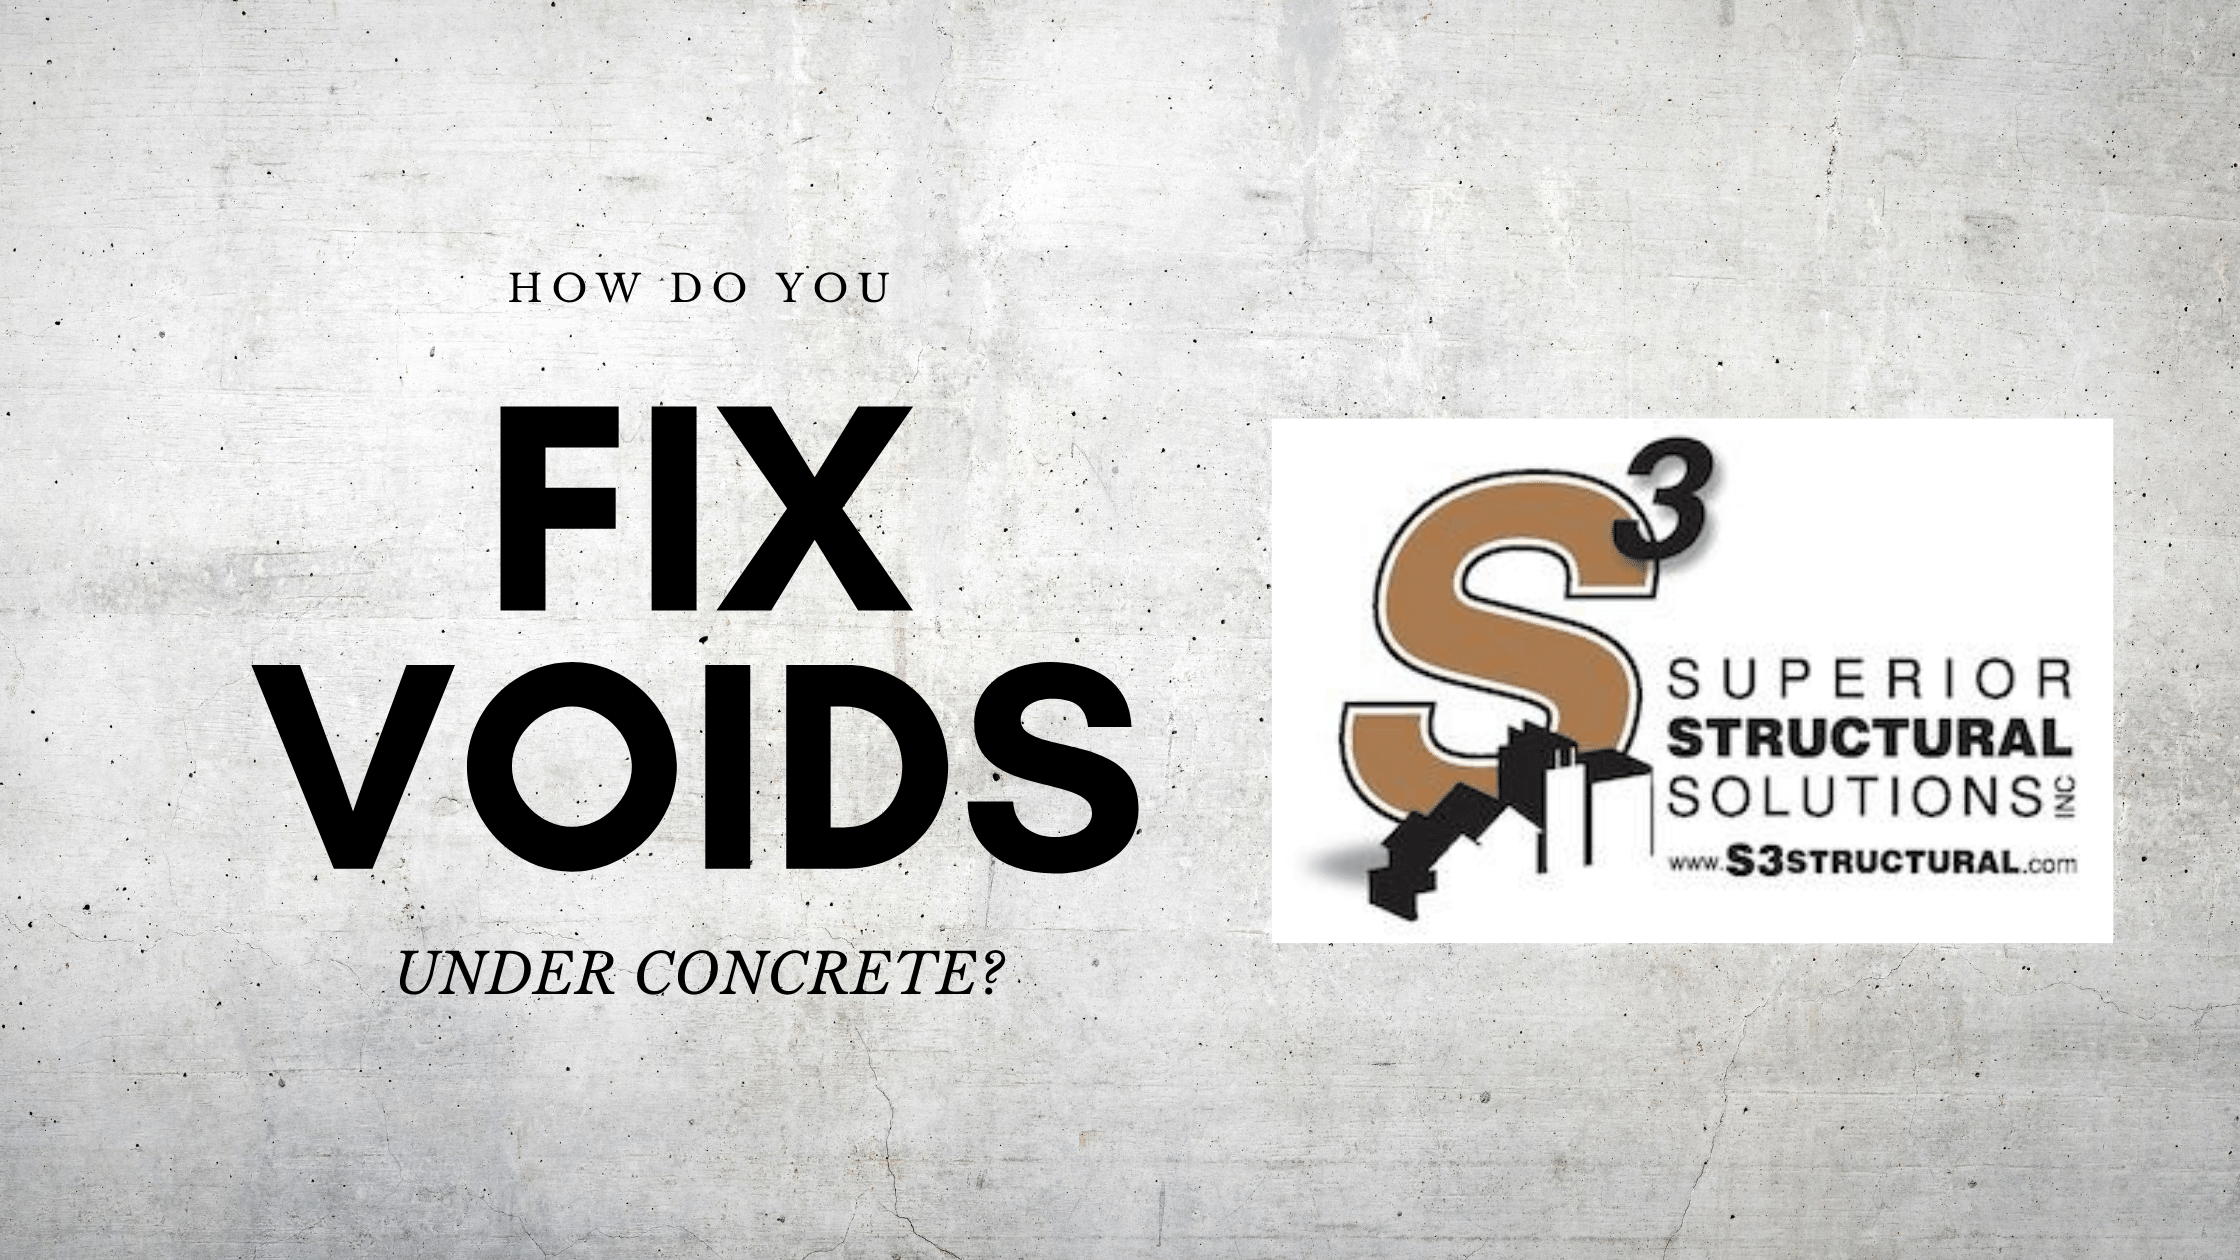 How Do You Fill Voids Under Concrete Slabs?